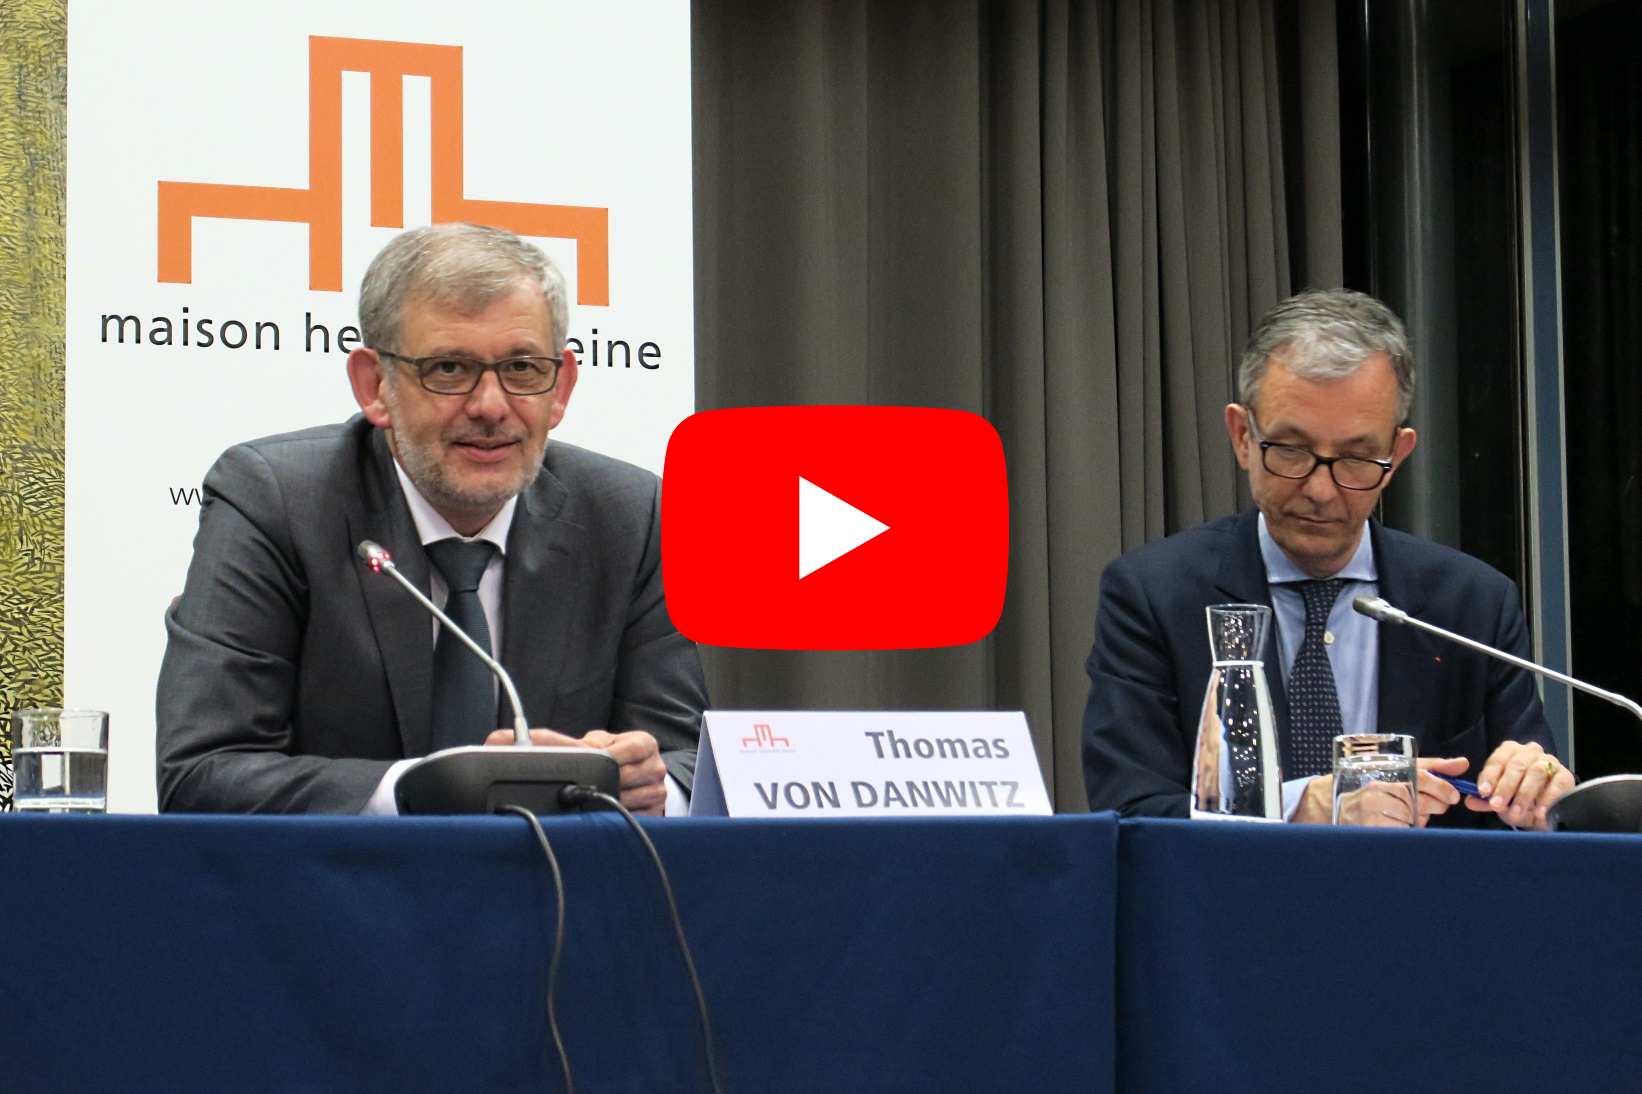 Thomas von Danwitz : regards d'un juge sur l'Europe - Thomas von Danwitz, David Capitant